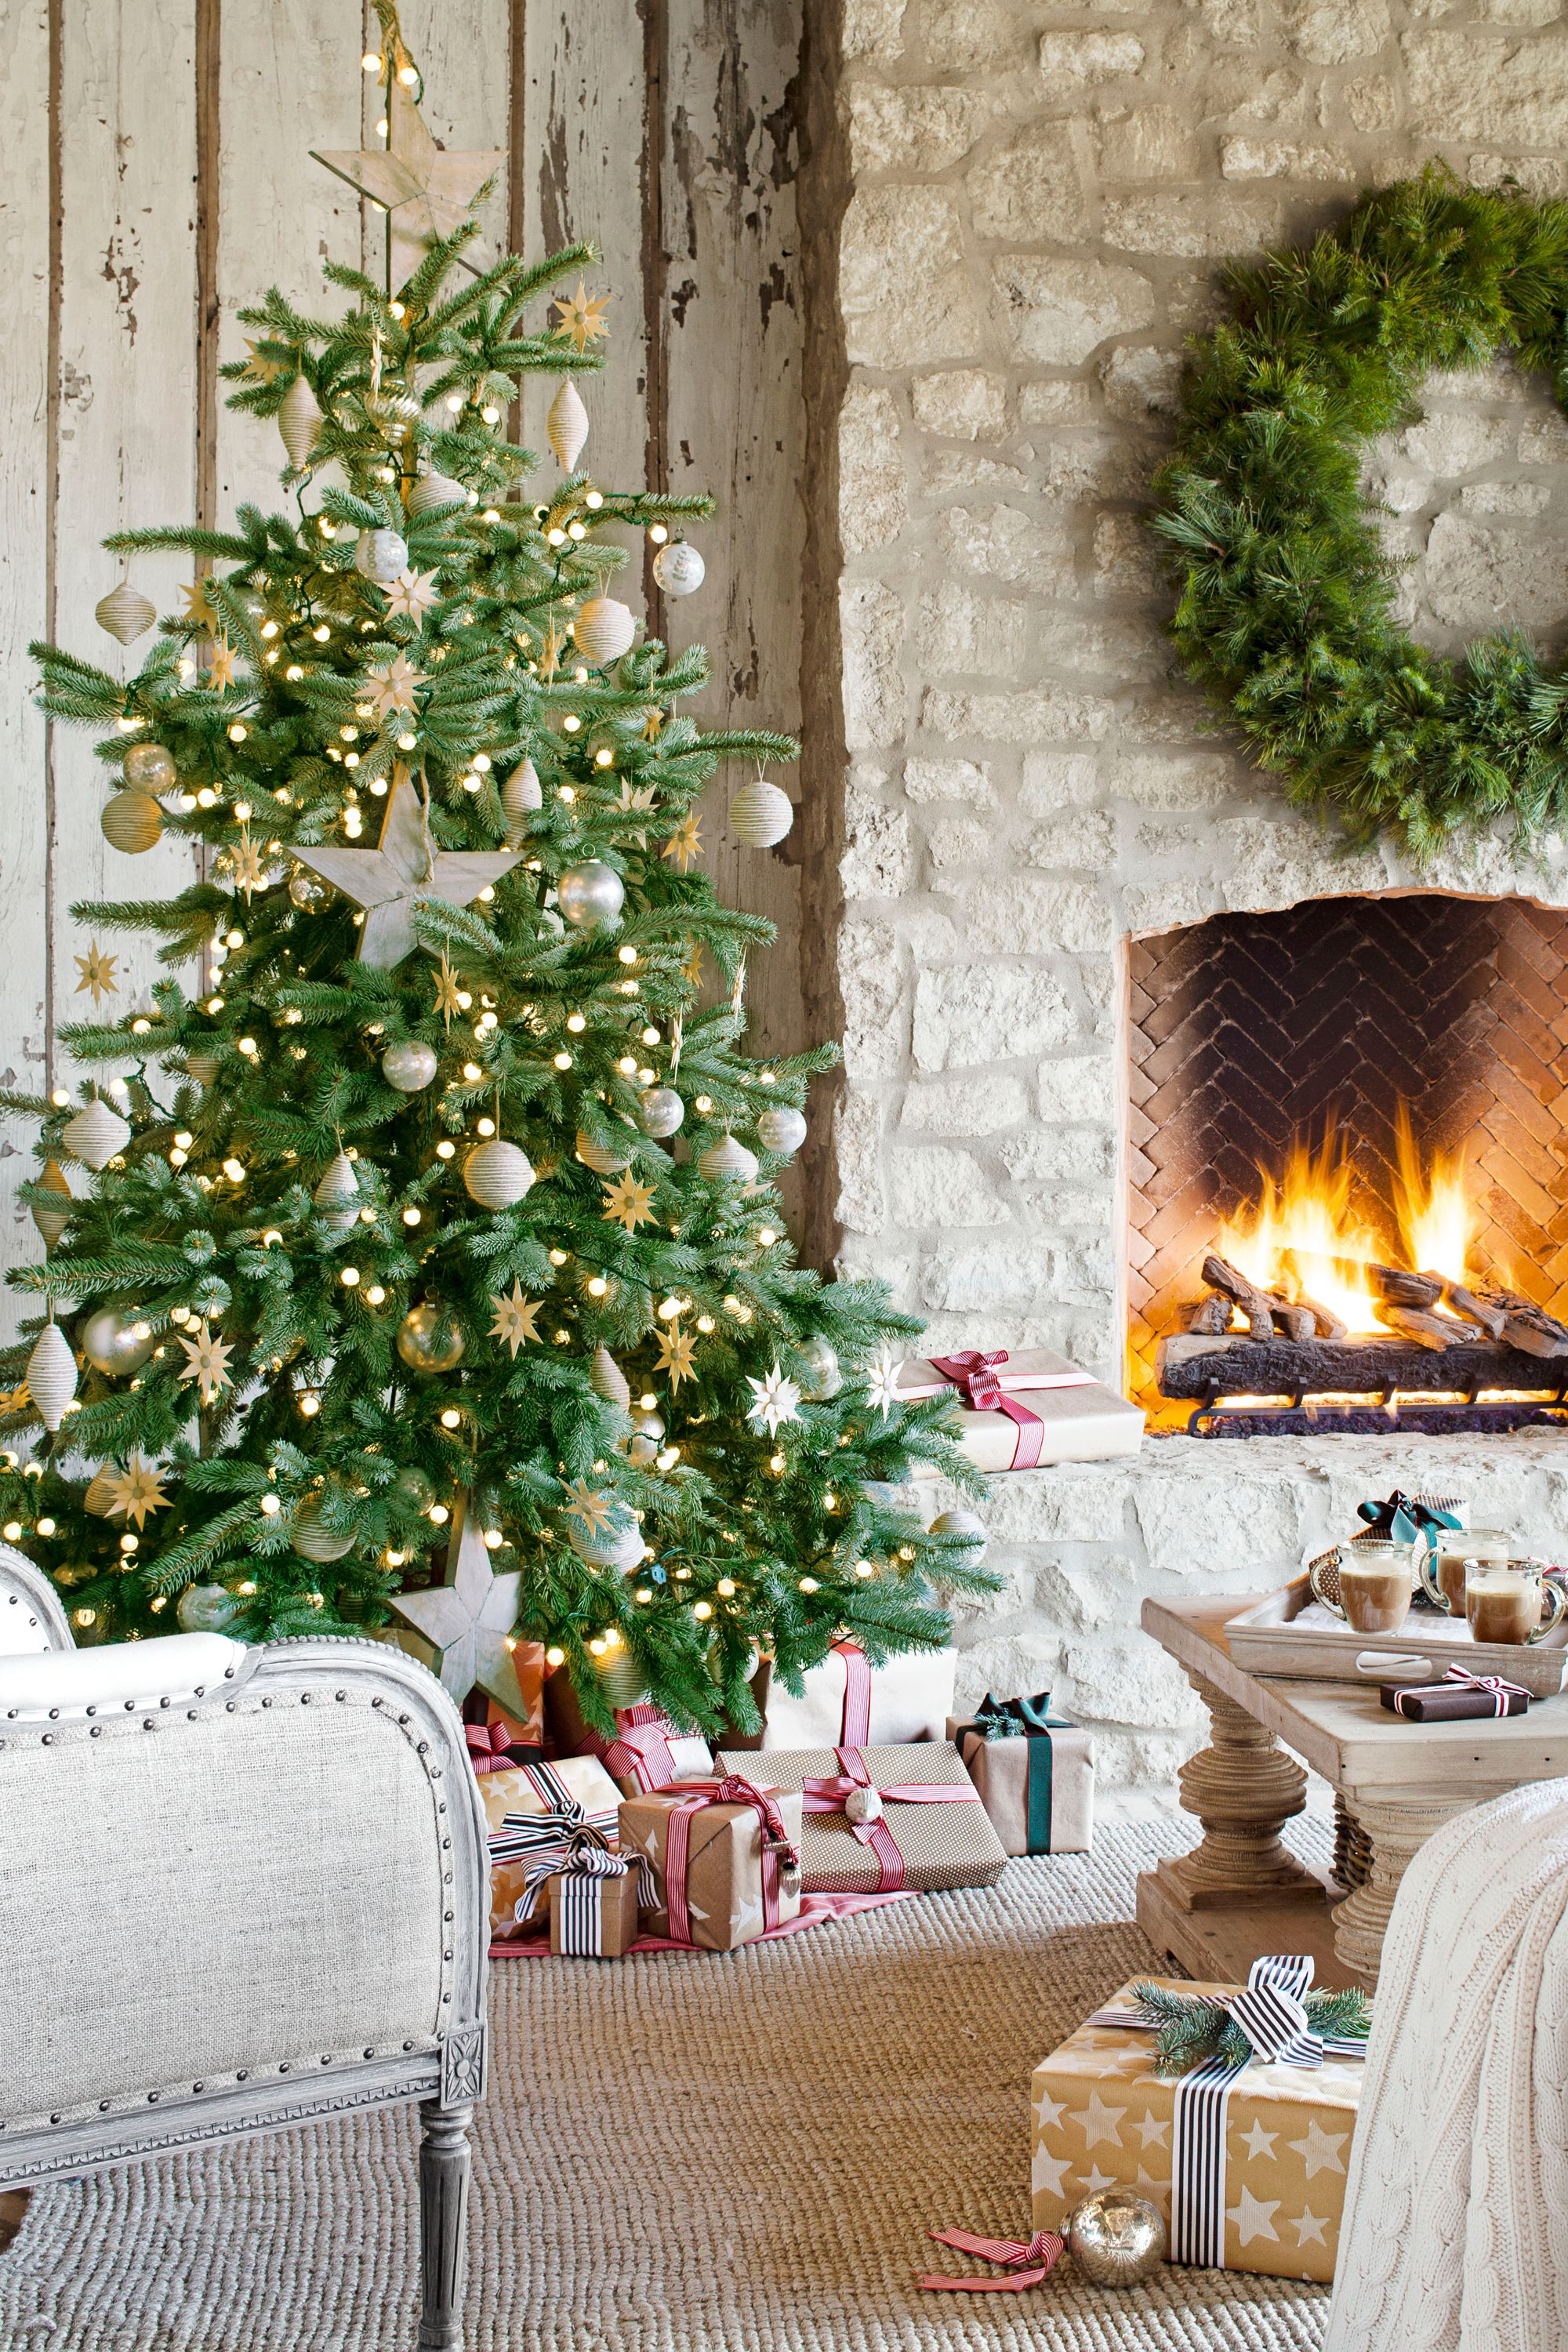 60  Best Christmas Tree Decorating Ideas   How to Decorate a     60  Best Christmas Tree Decorating Ideas   How to Decorate a Christmas Tree